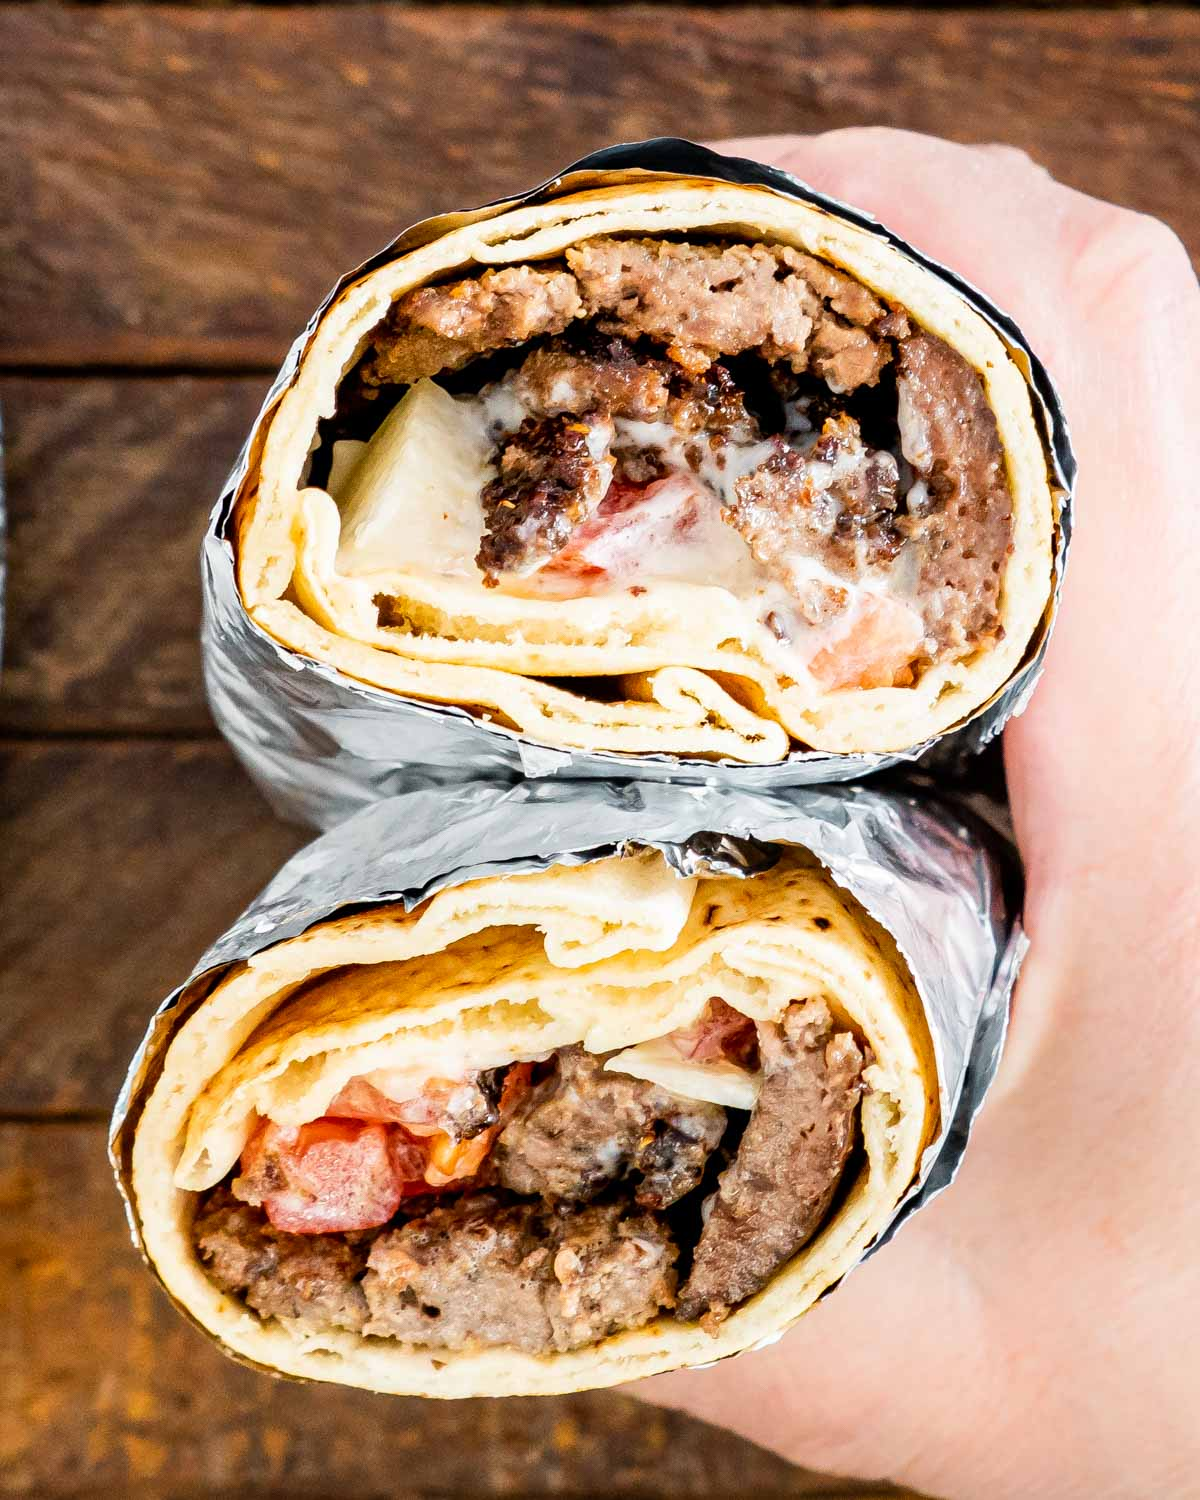 two halves of halifax donair held in a hand.